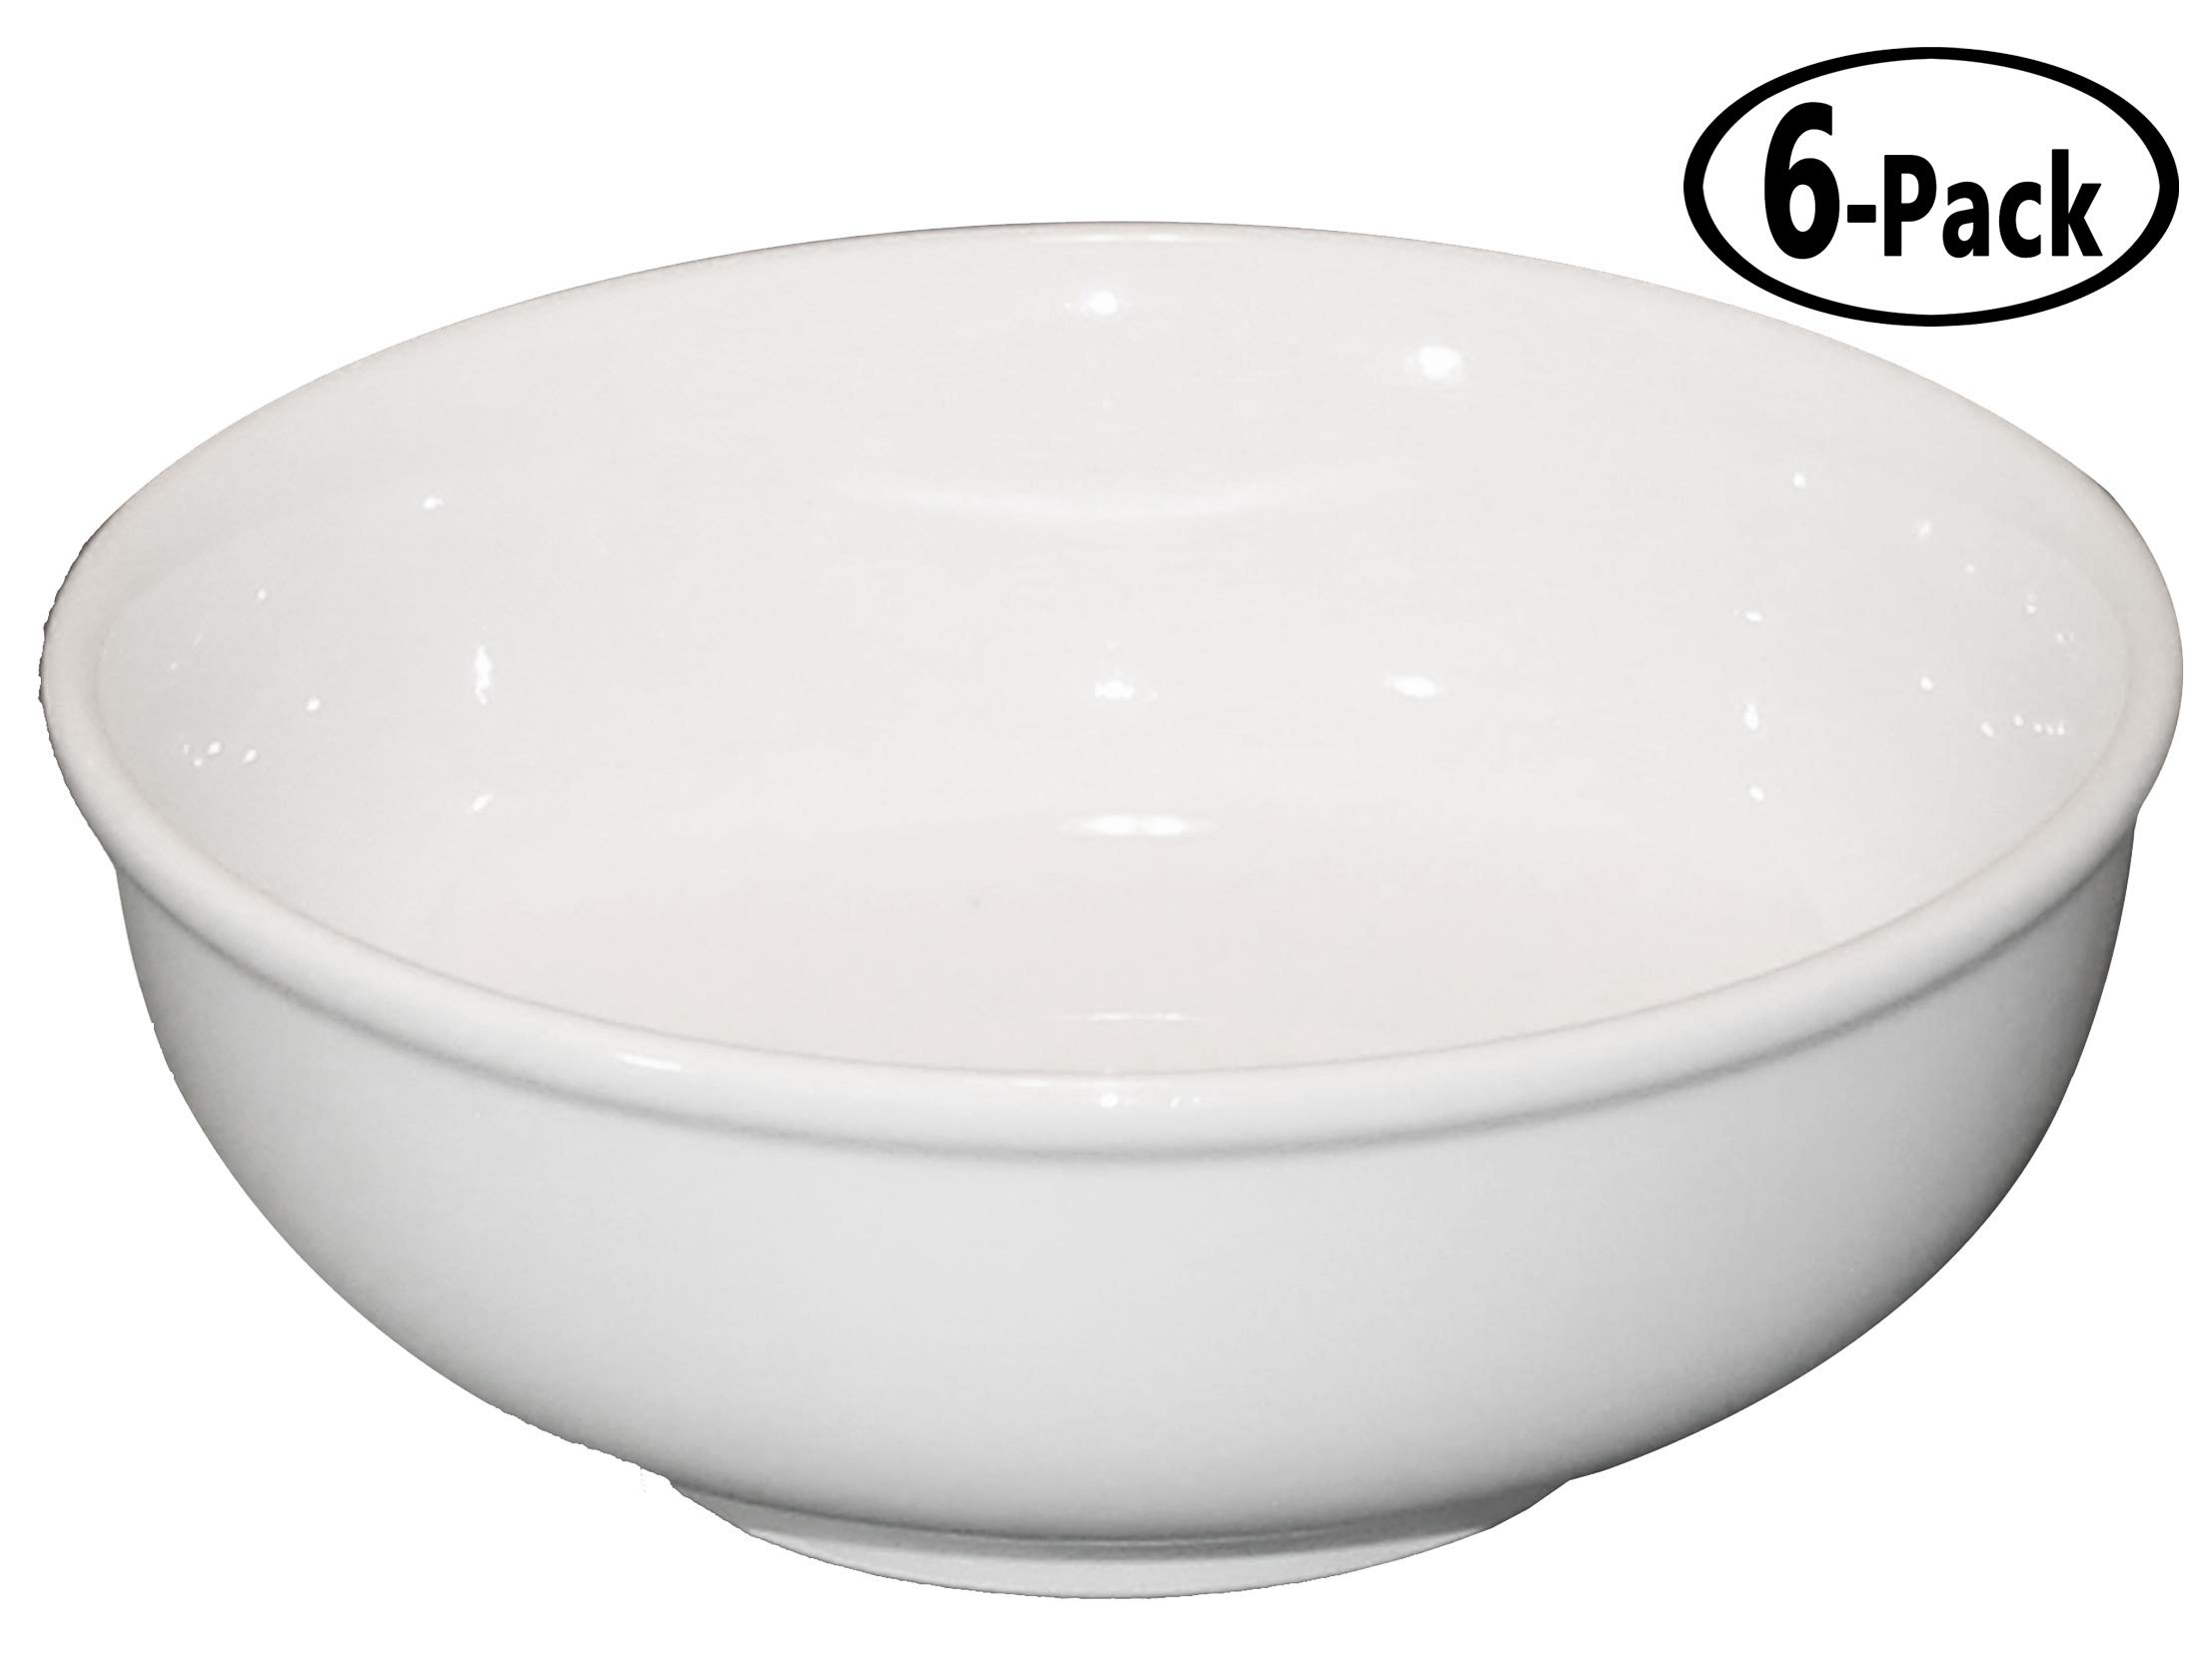 Cameo Ceramic Pho Soup Bowls with Pan Scraper, 7.25 Inch, 38 Ounce, Set of 6, White Ivory